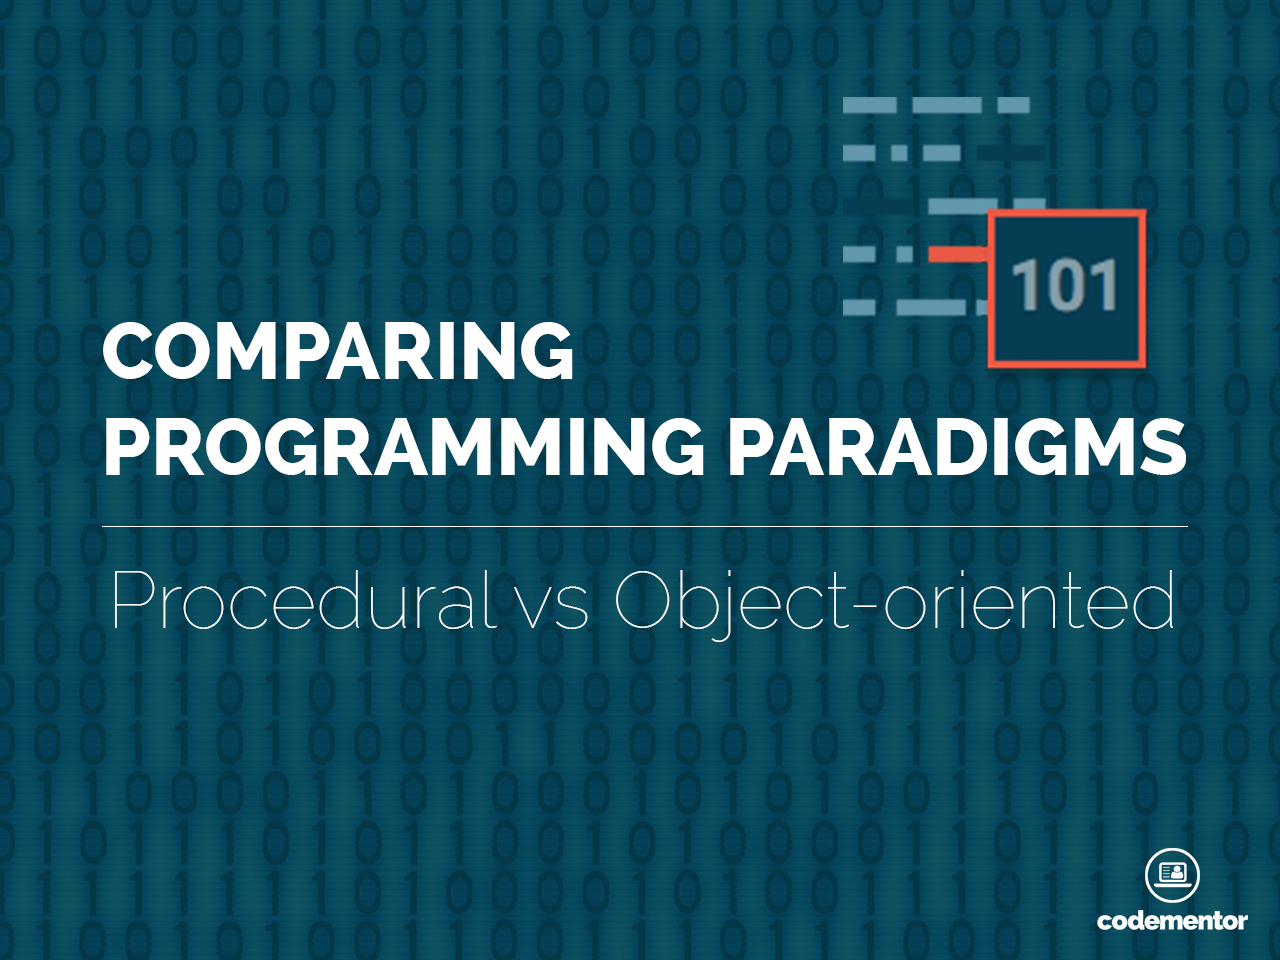 Comparing Programming Paradigms: Procedural Programming vs Object-oriented Programming